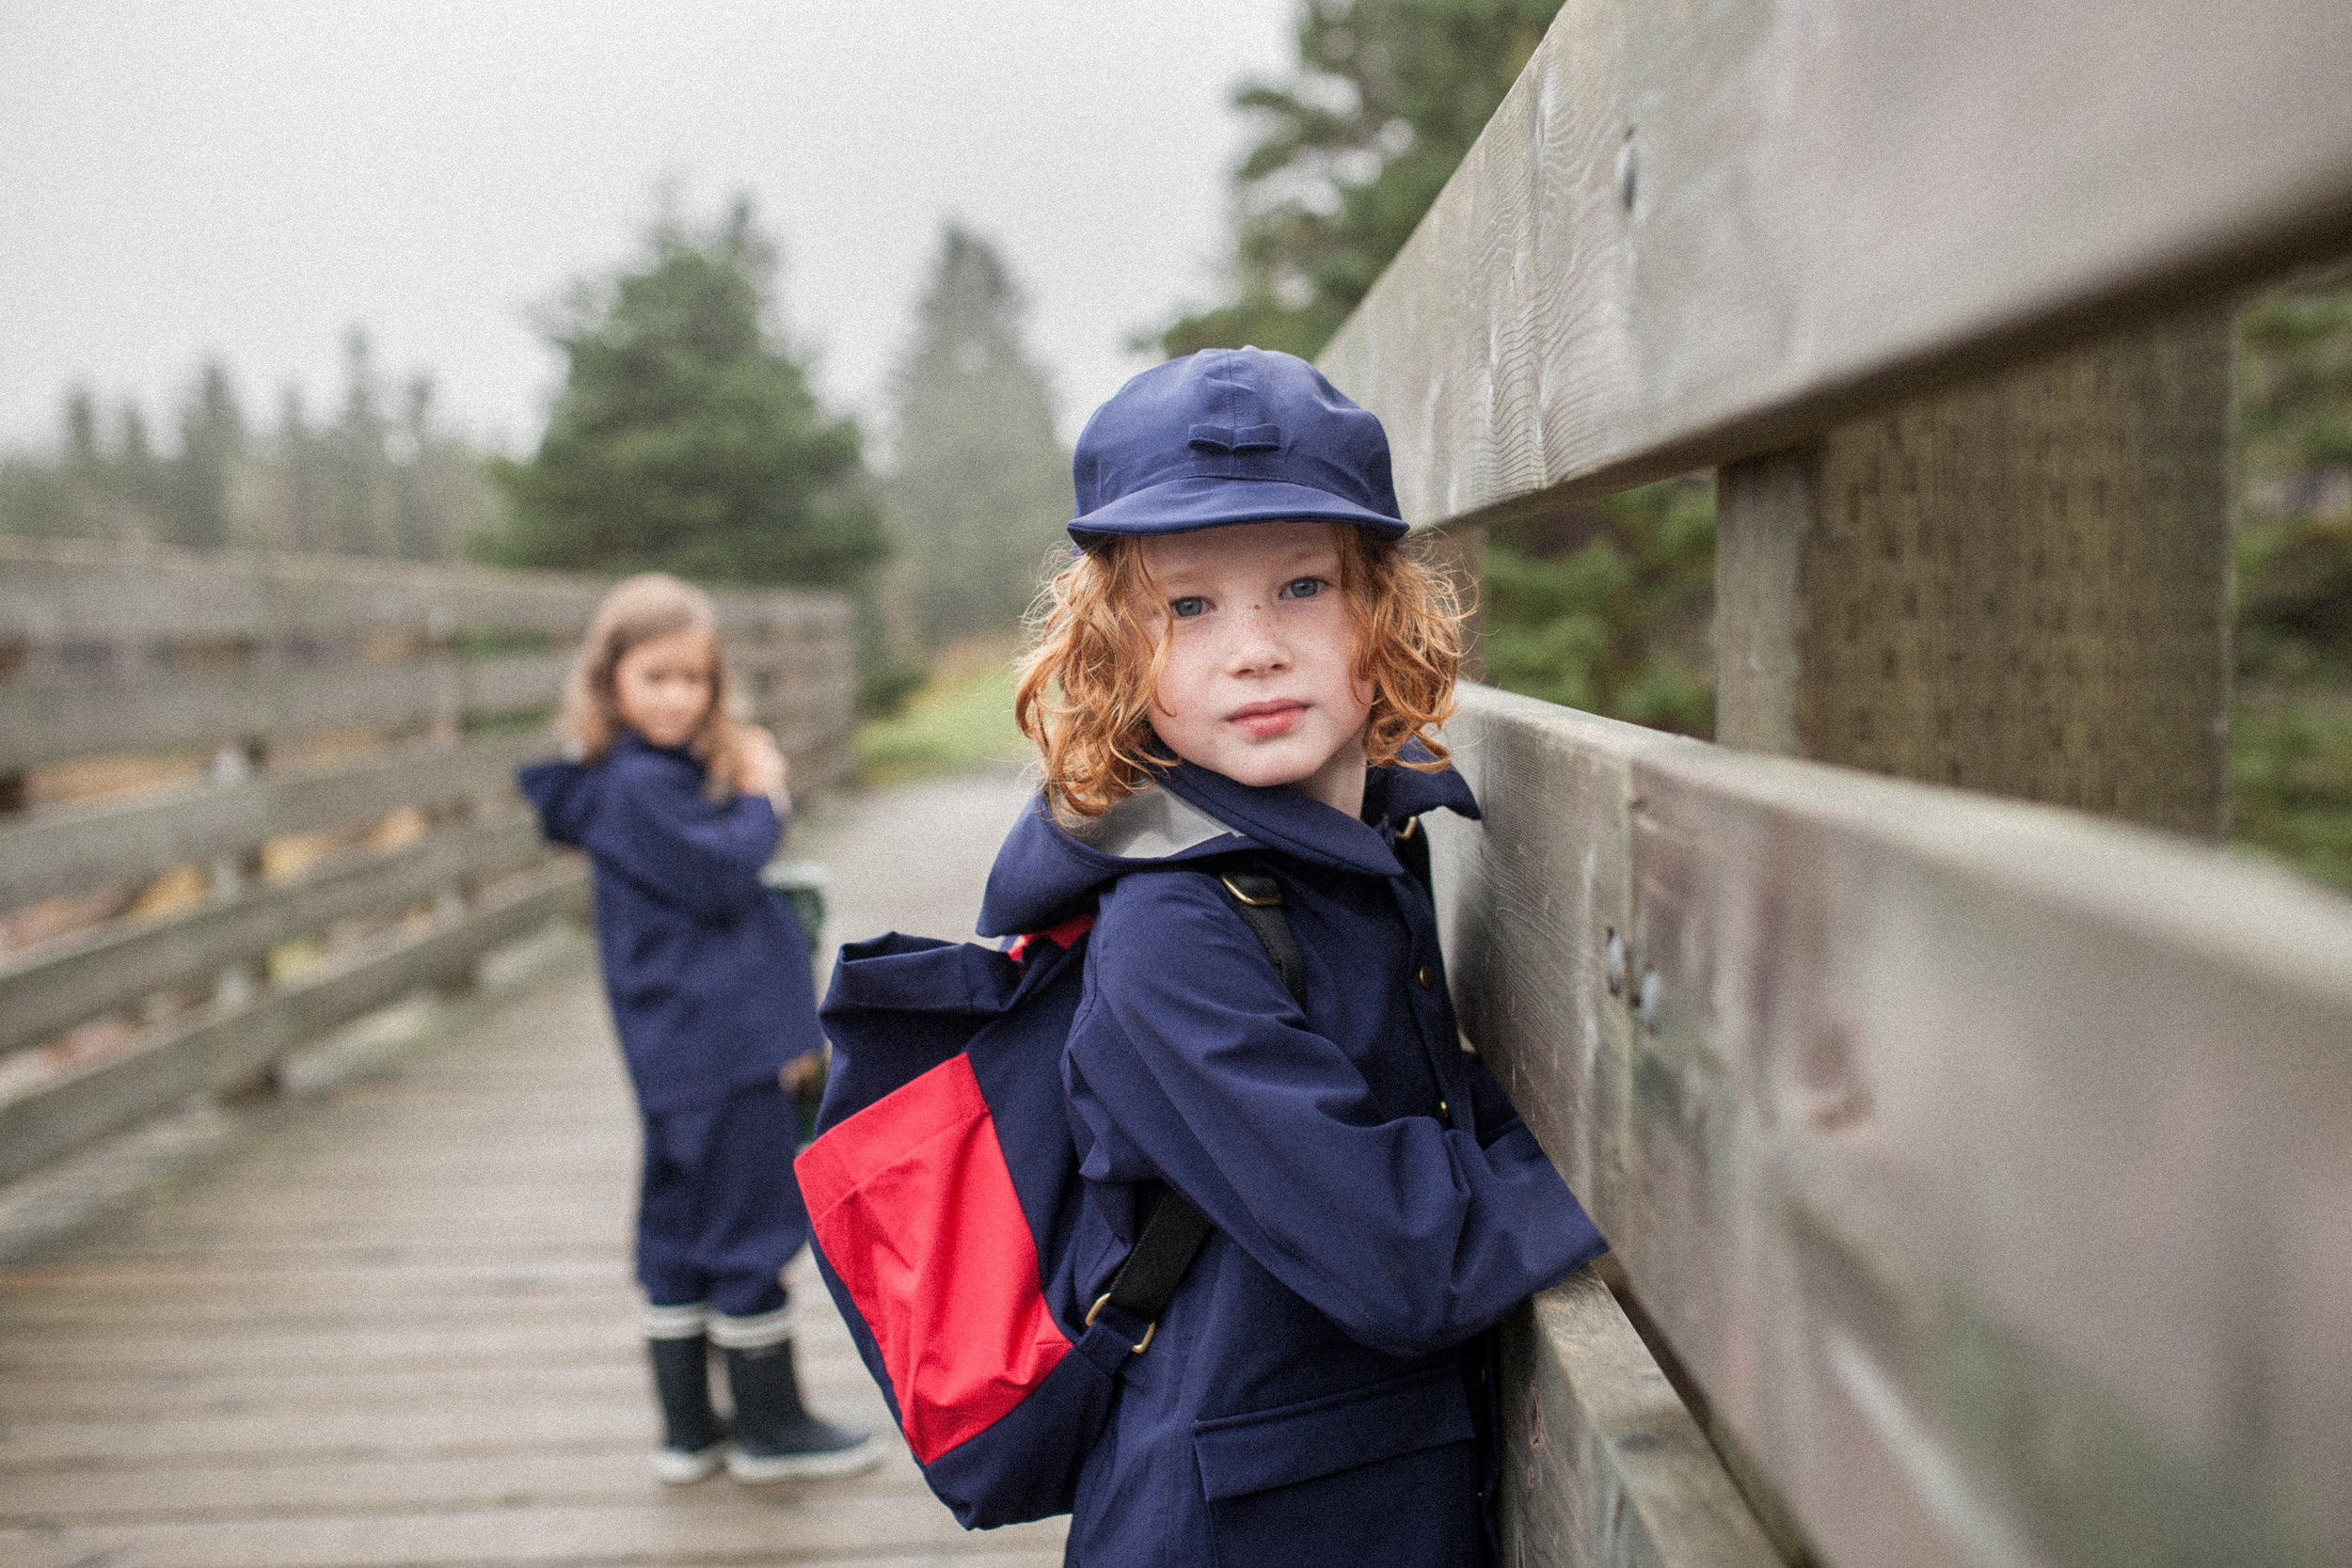 FAIRE CHILD MAKEWEAR - Faire Child is a Dartmouth-based children's brand who creates eco-friendly, chemical-free, windproof, waterproof and lightweight outerwear so your kids can play outside, whatever the weather.